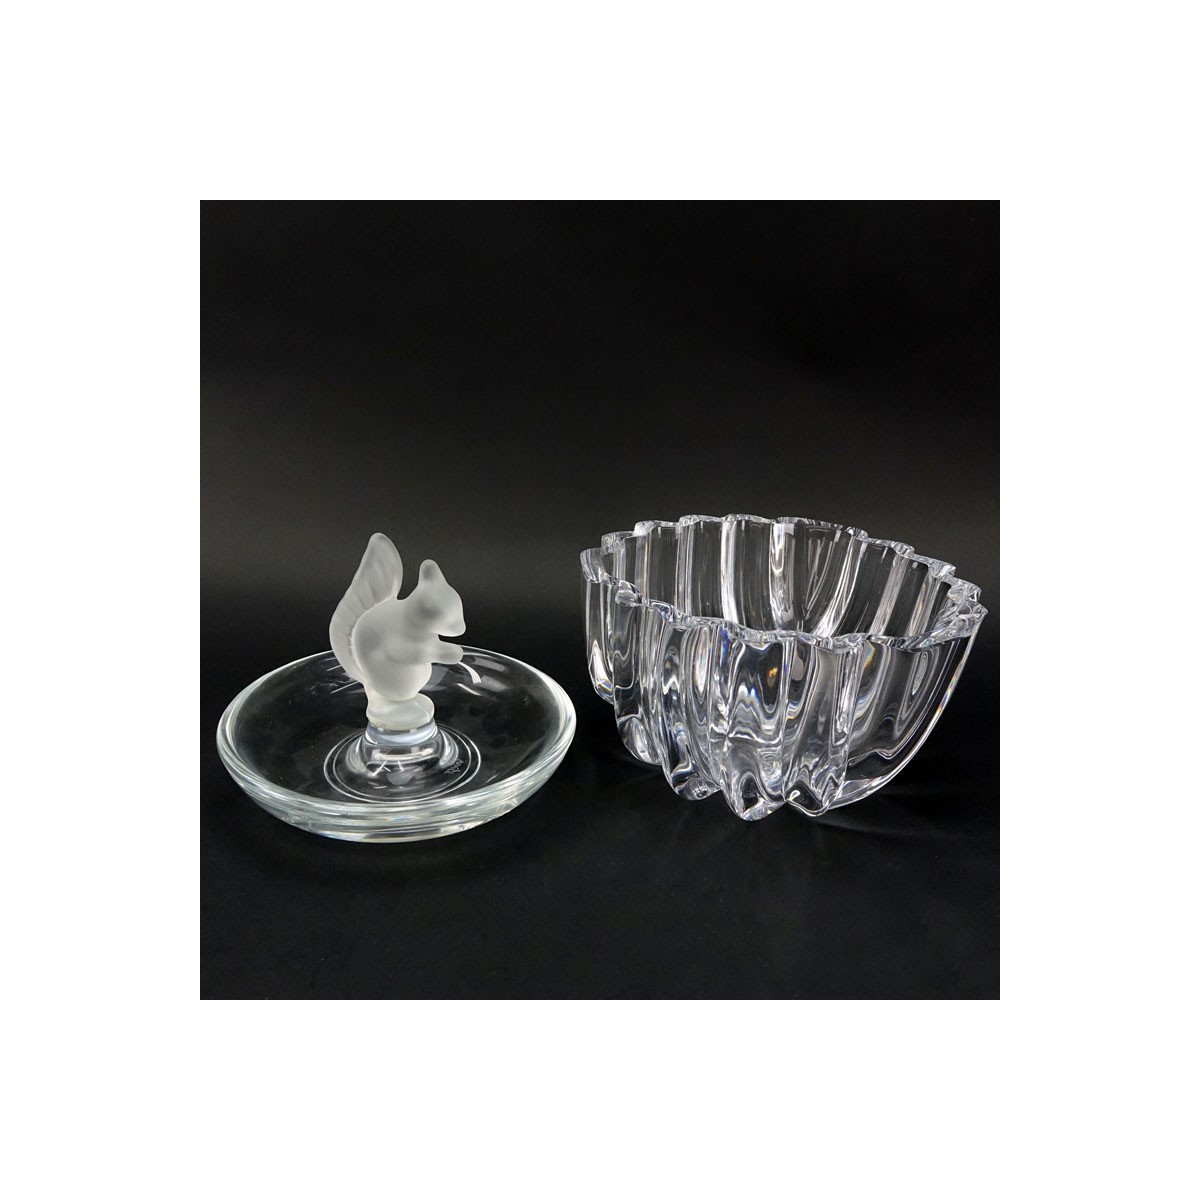 Grouping of Two (2): Orrefors Crystal Bowl, Sevres Crystal and Frosted Crystal Squirrel Candy Dish.